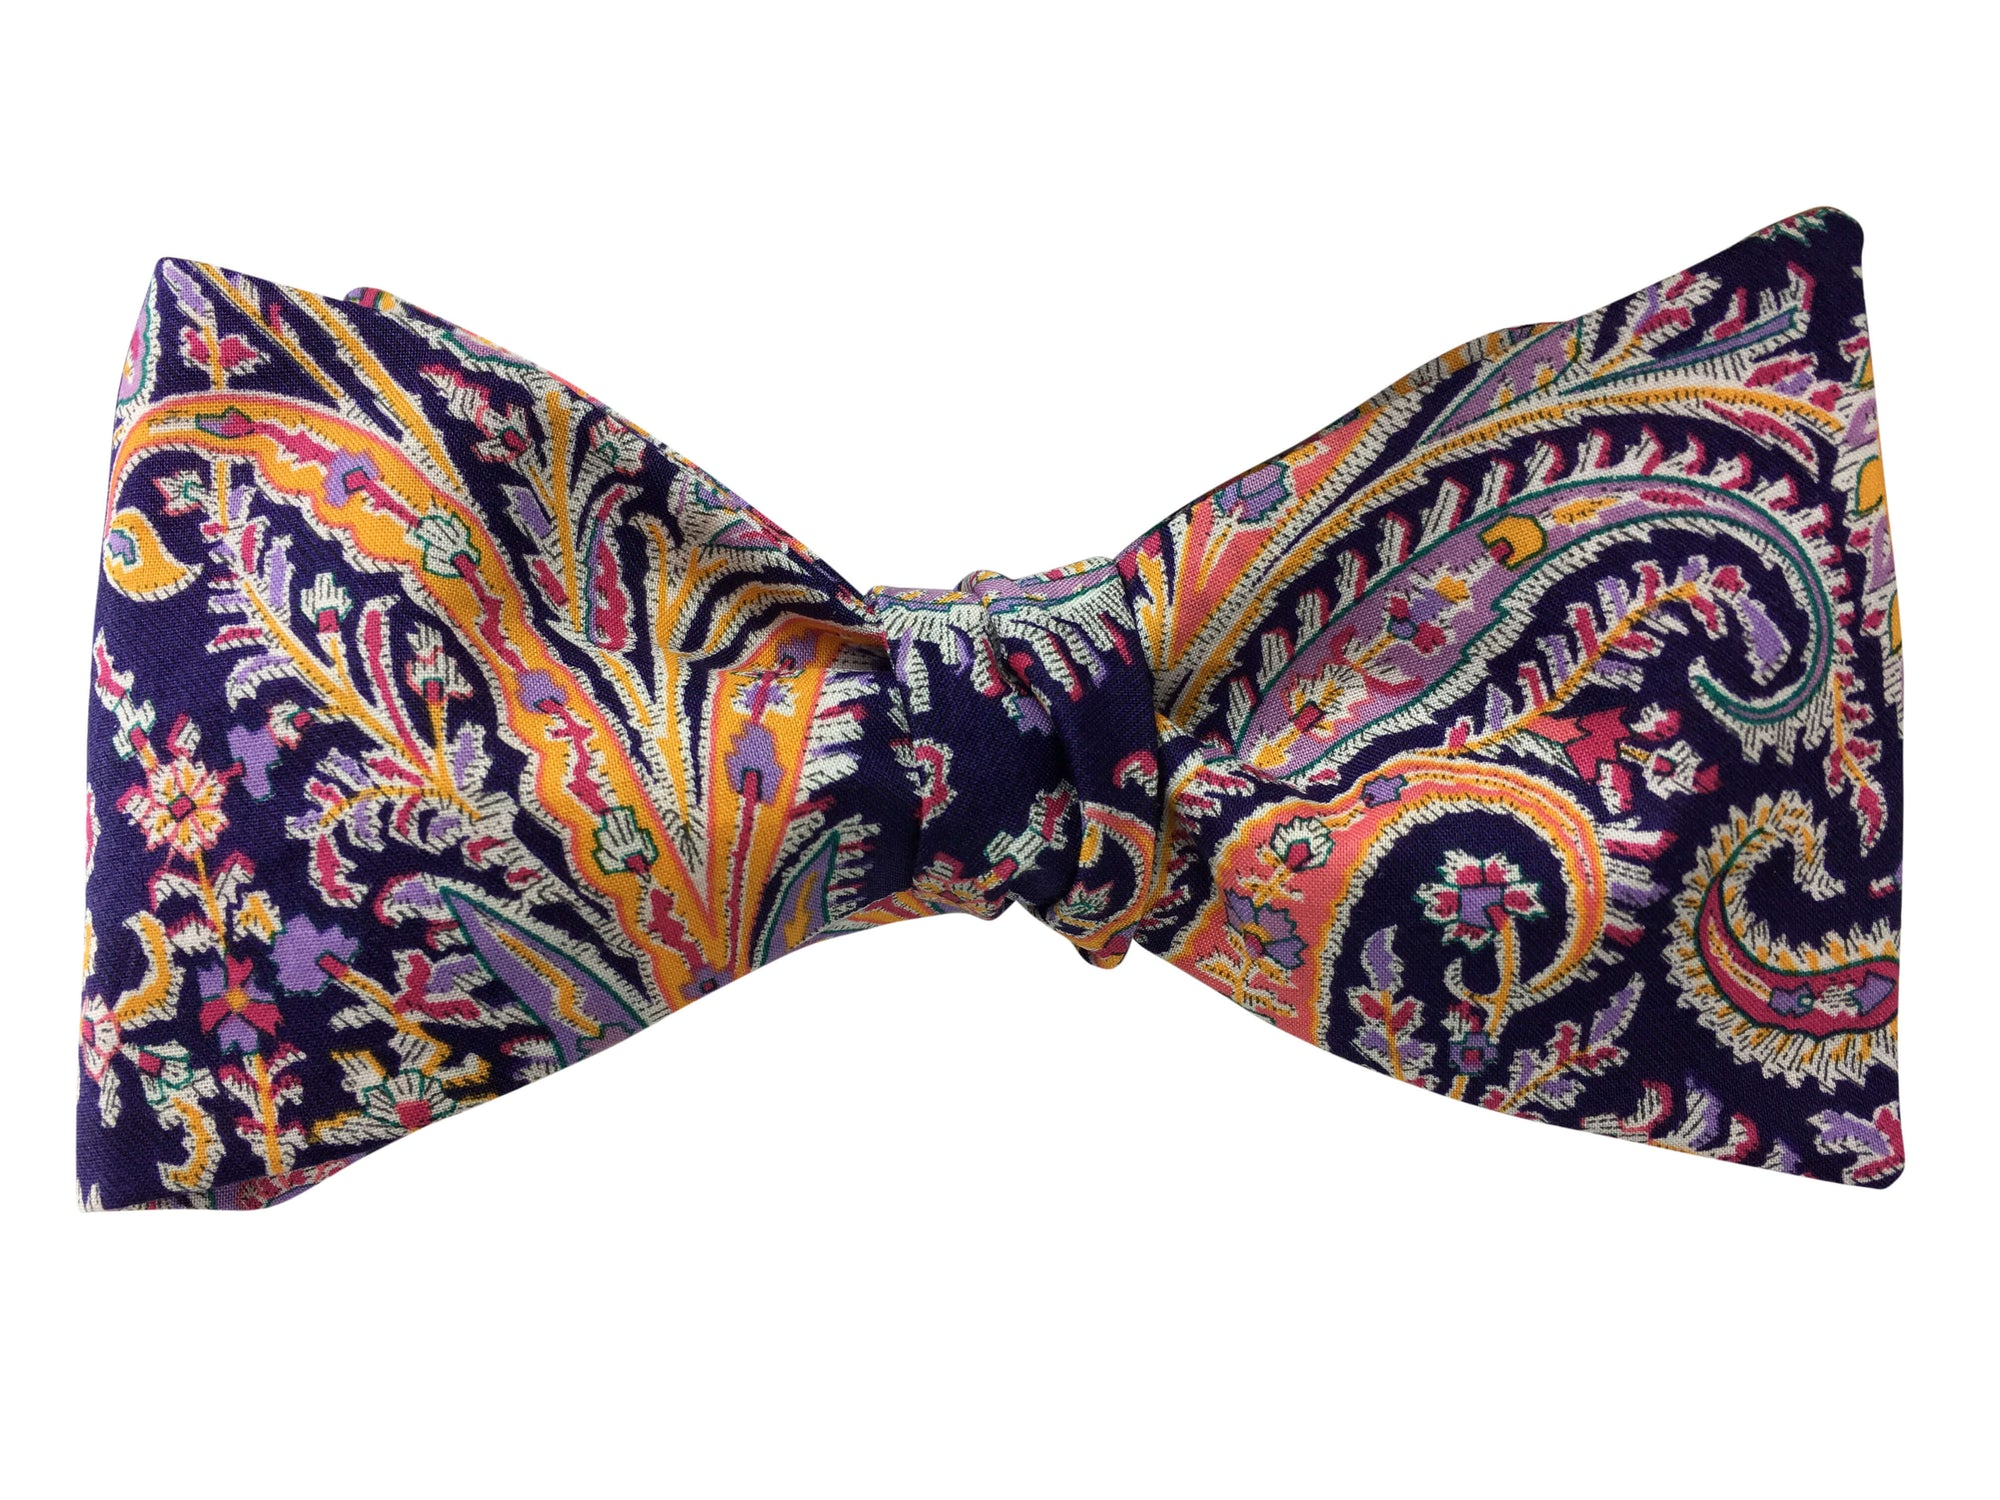 Deep Purple Indigo Paisley Self Tie Bow Tie - Liberty of London Fabric